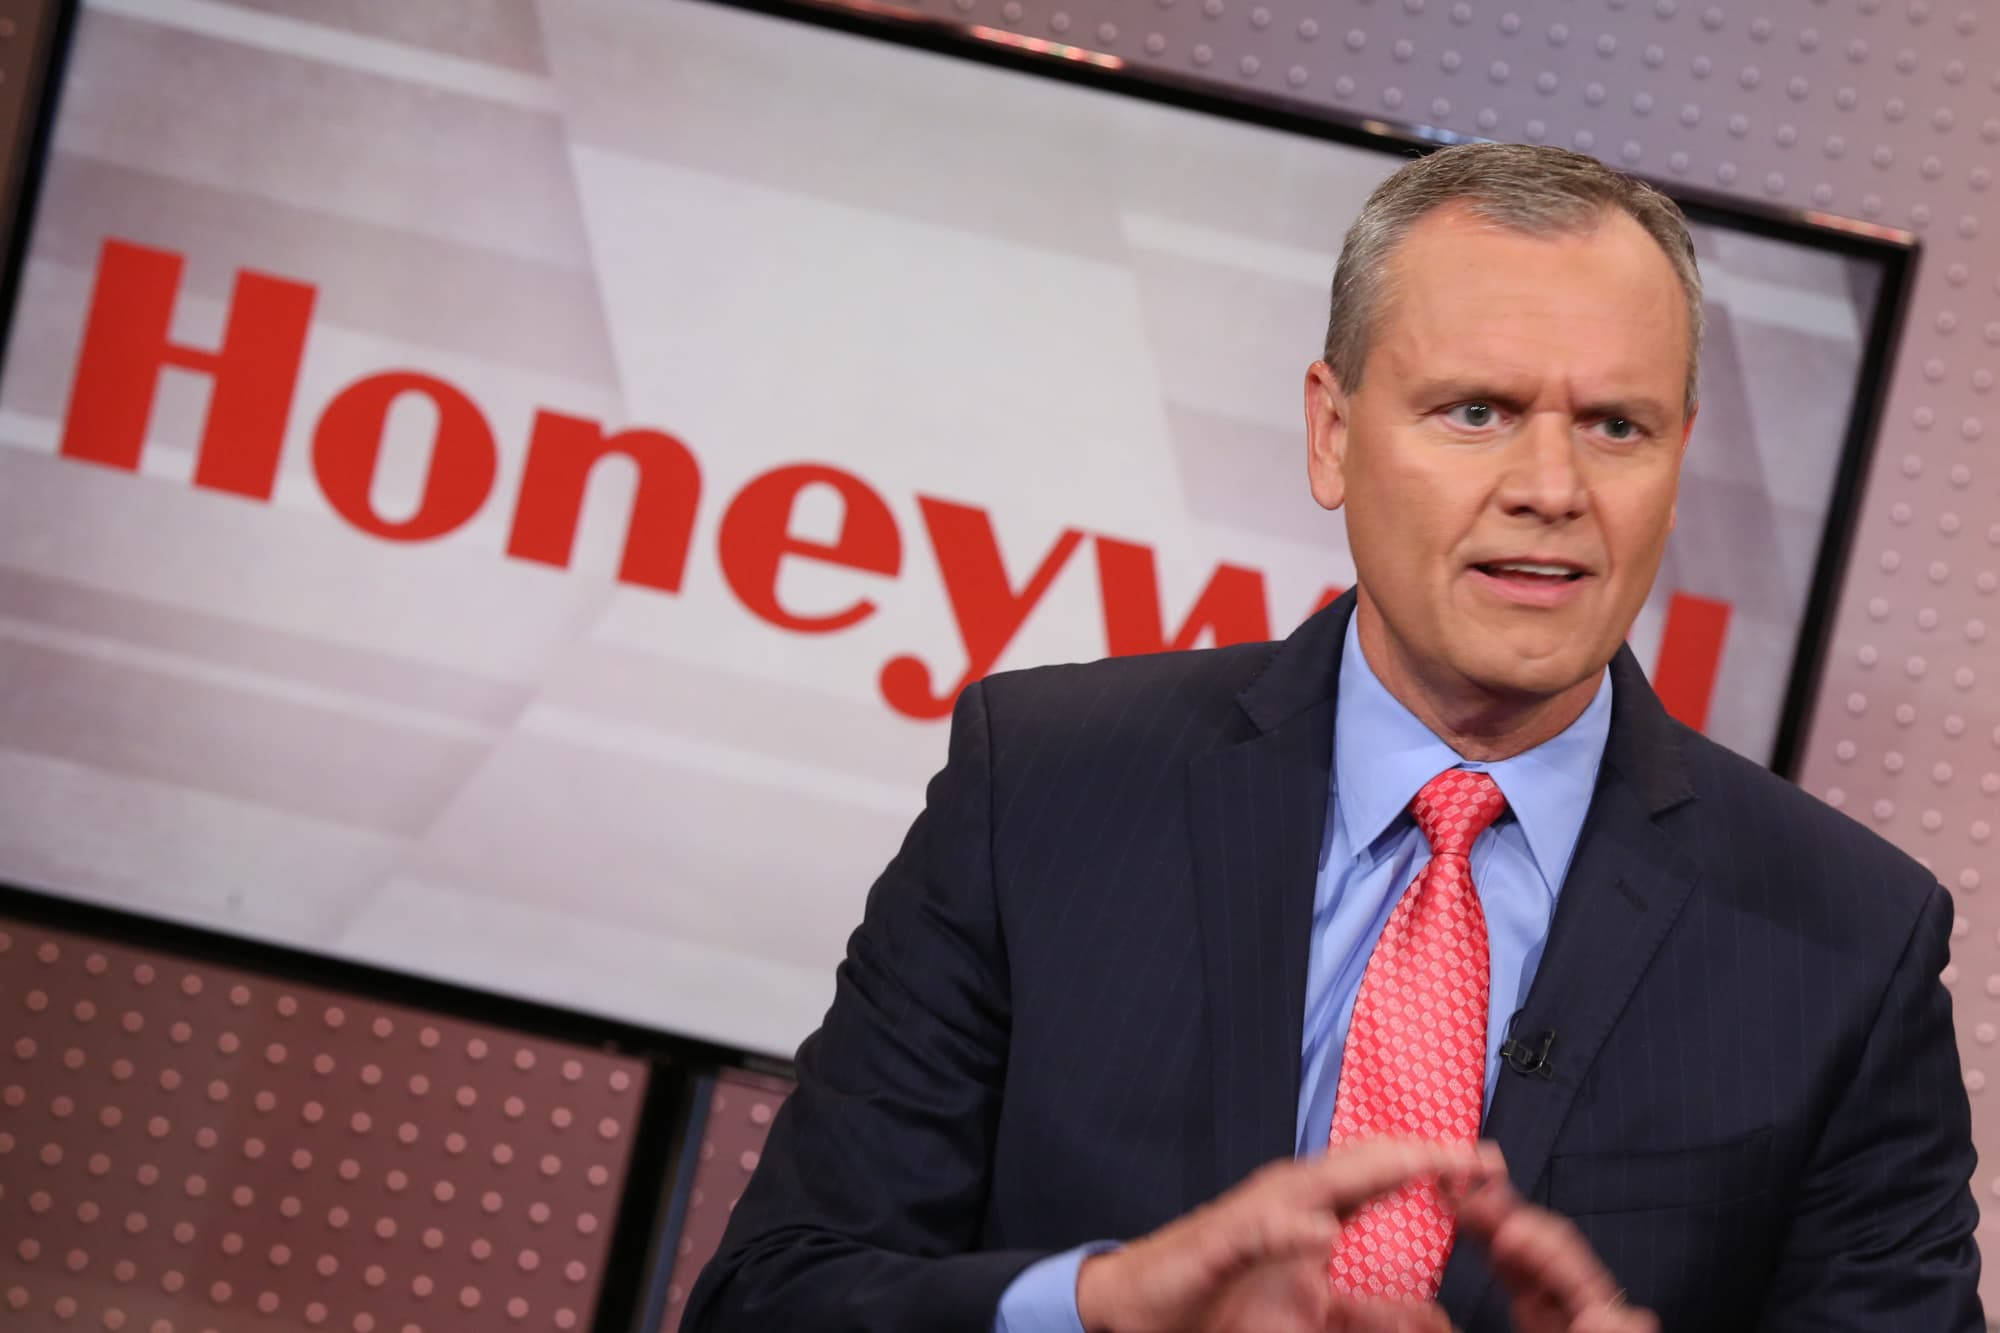 Jim Cramer: Why 100 year-old Dow stock Honeywell is a big bet on the future